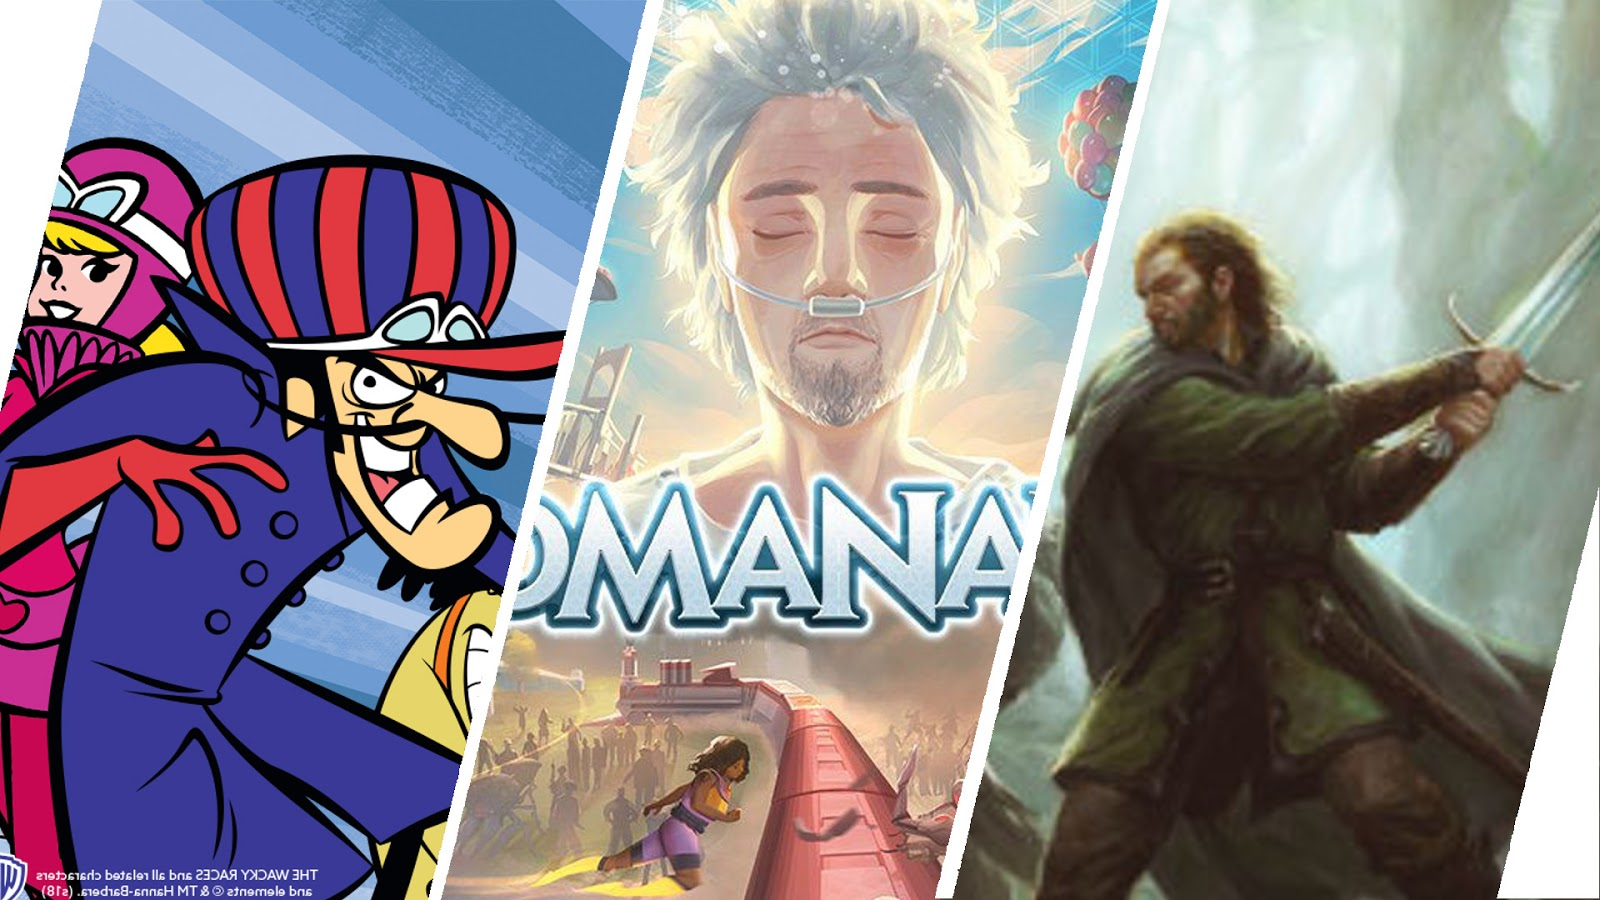 Awesome Games Coming in 2019 Part 3: Traditional Publishing